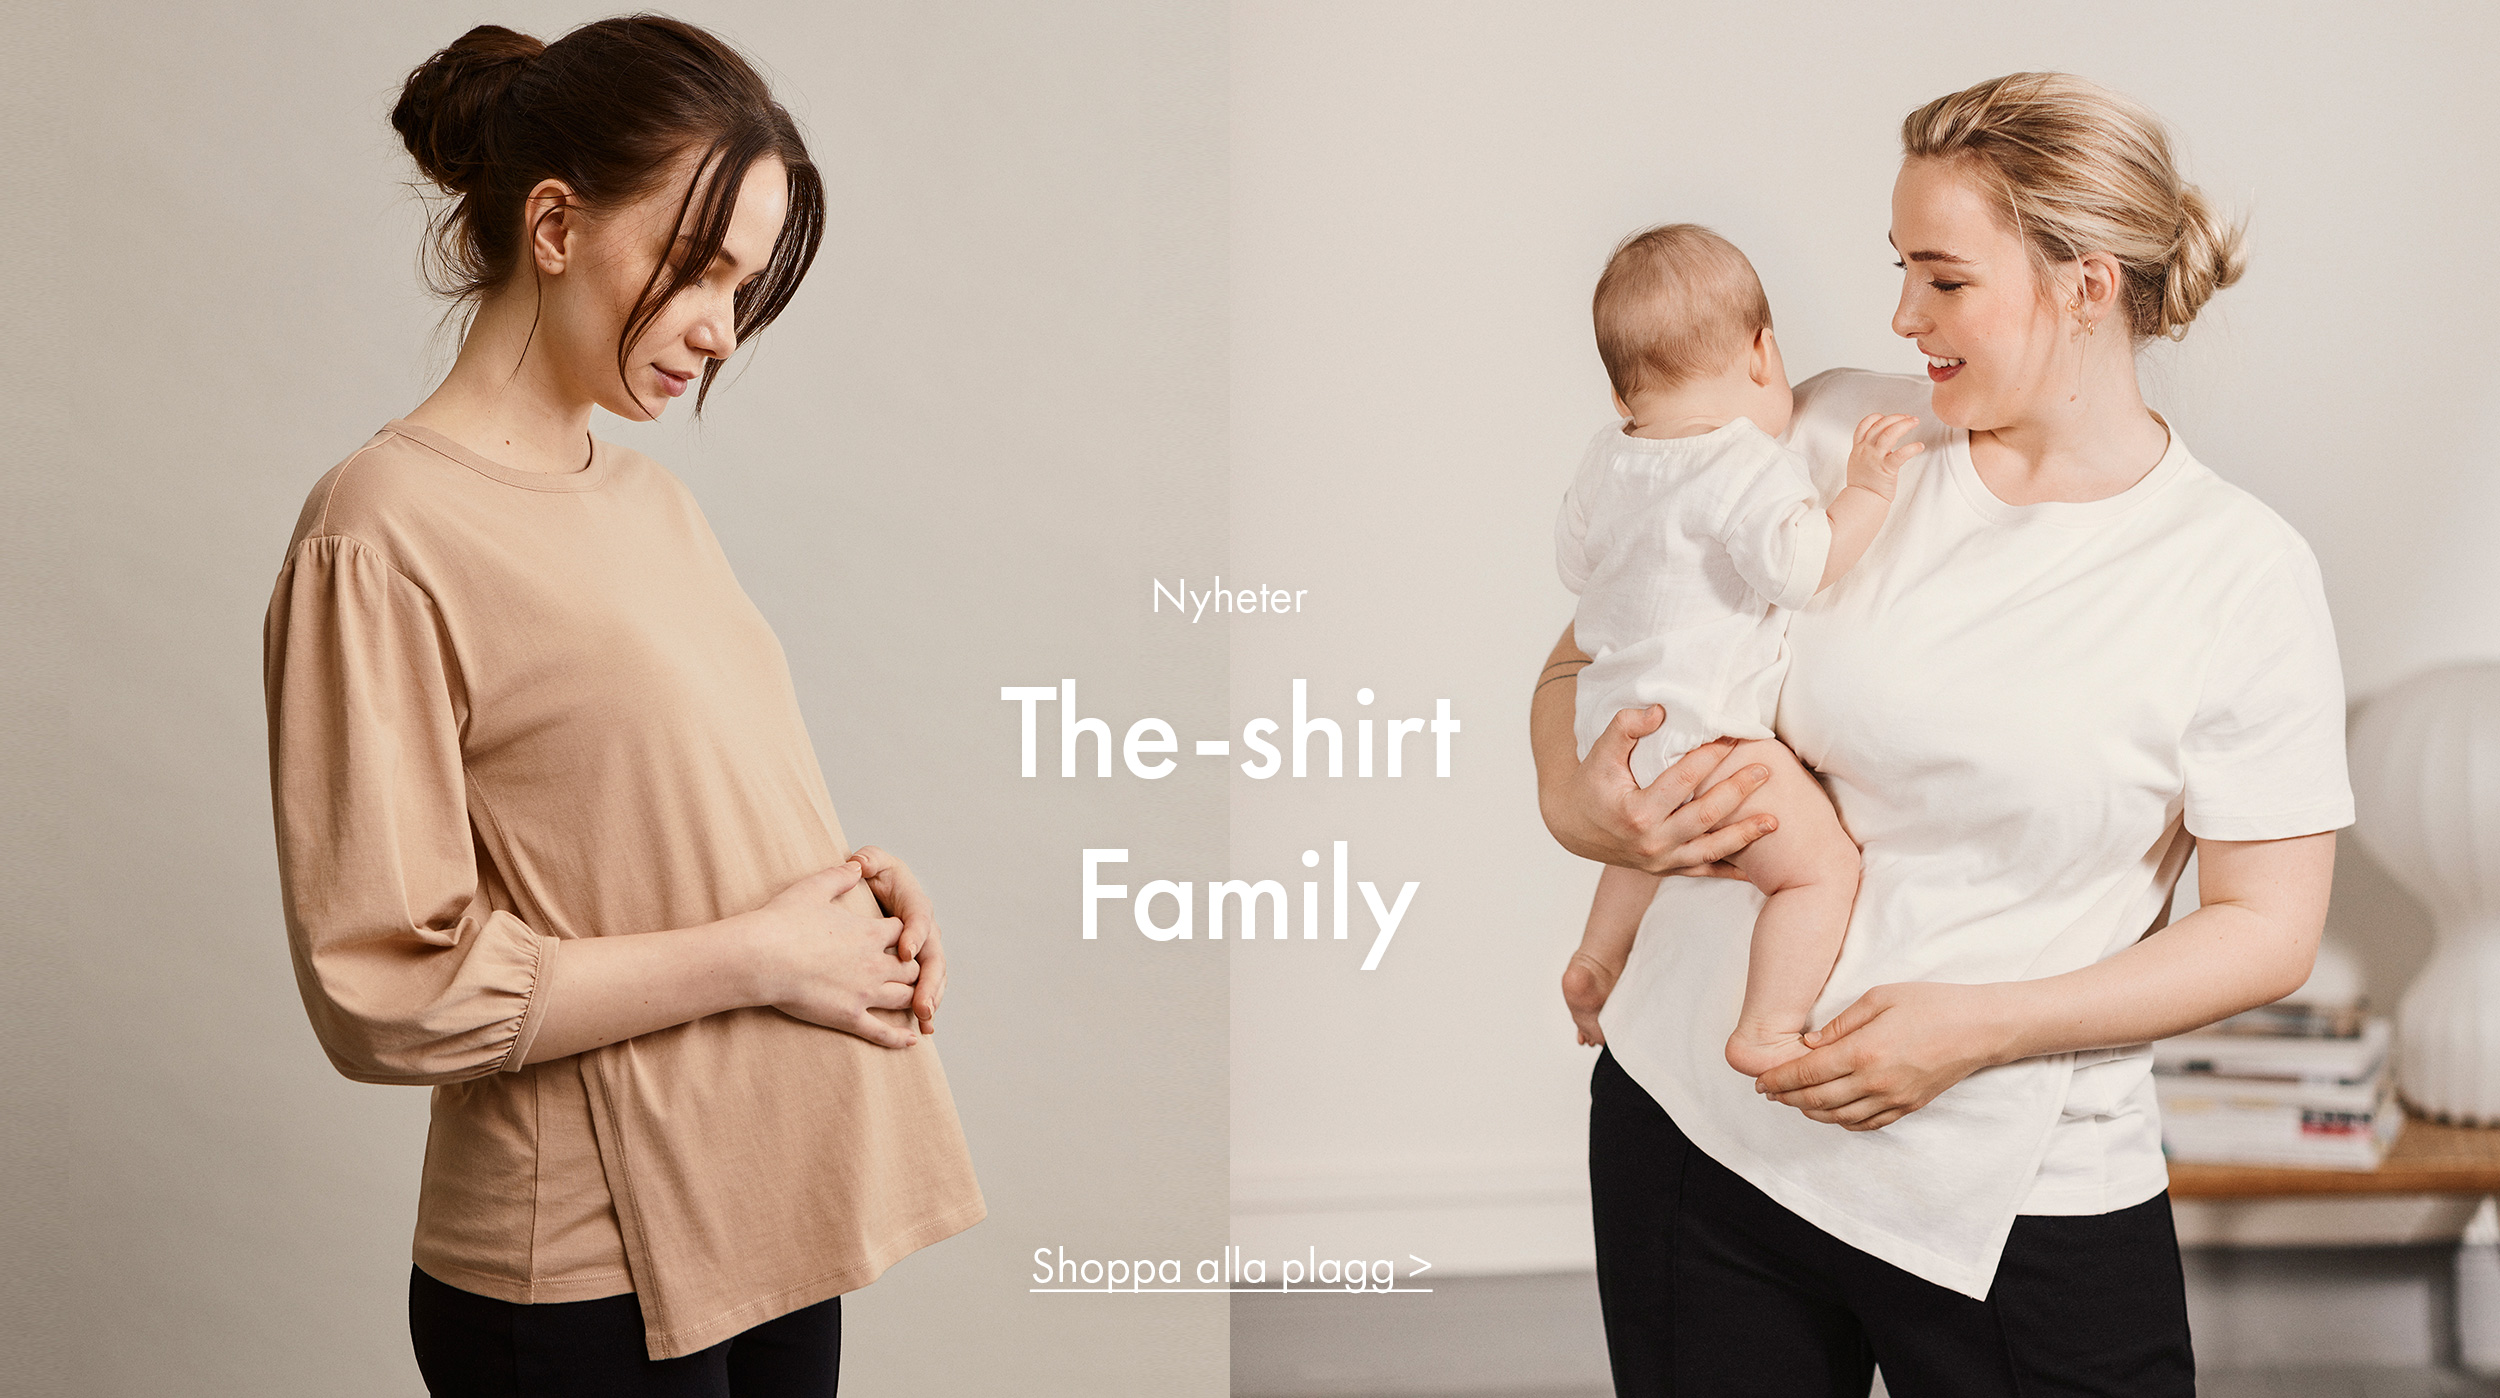 New arrivals - The-shirt family